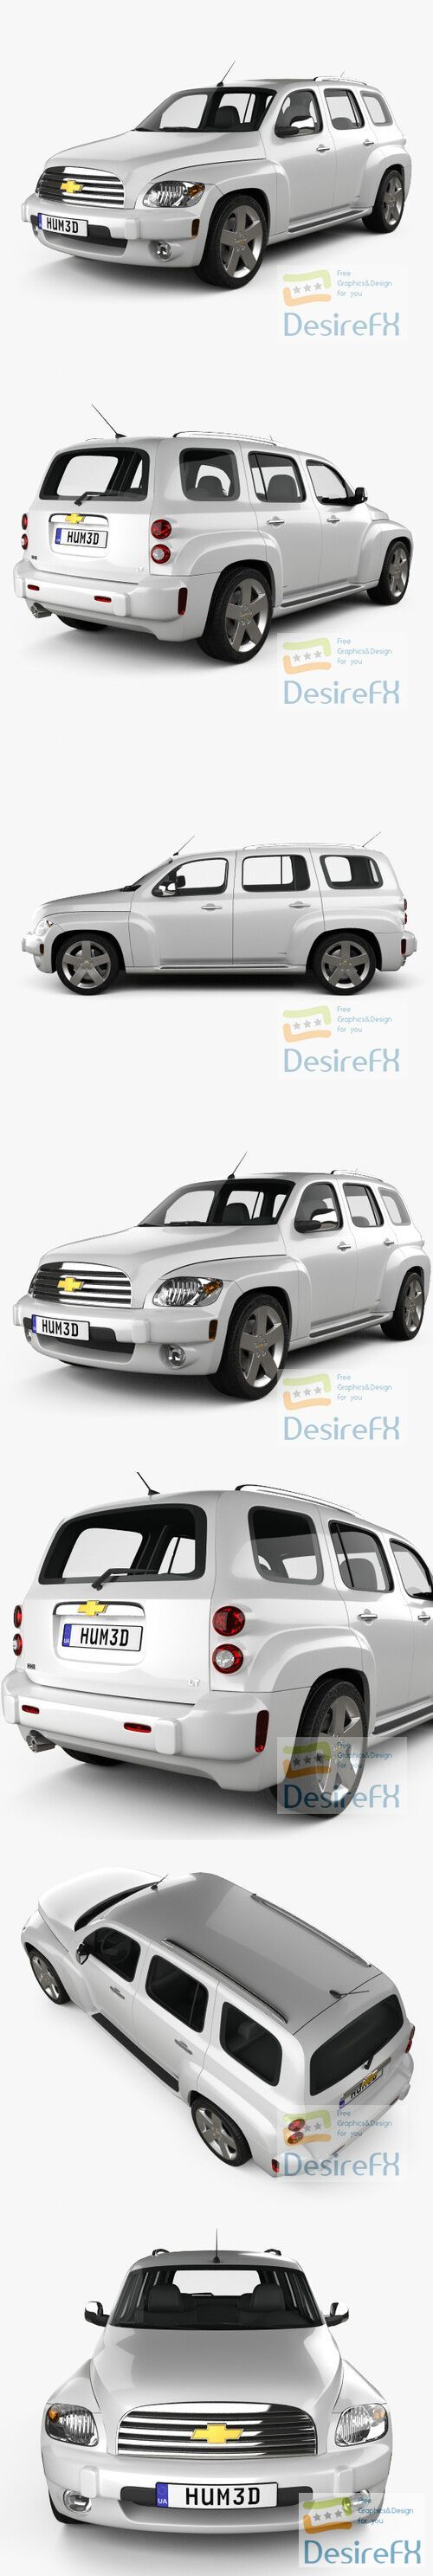 Chevrolet HHR wagon 2011 3D Model